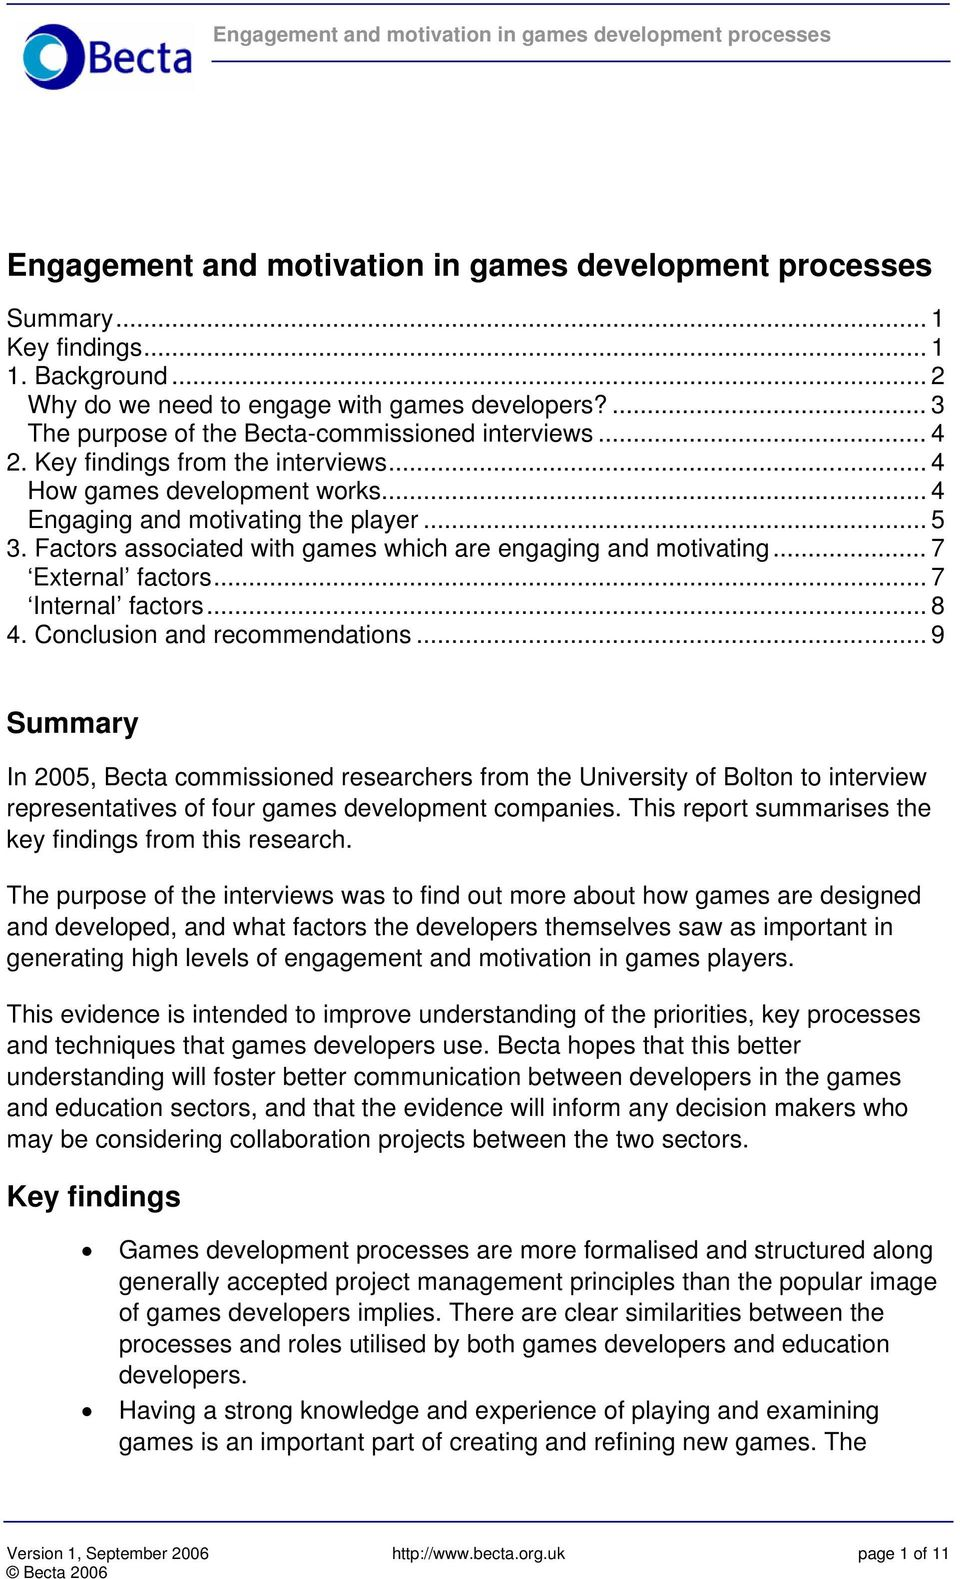 .. 4 Engaging and motivating the player... 5 3. Factors associated with games which are engaging and motivating... 7 External factors... 7 Internal factors... 8 4. Conclusion and recommendations.